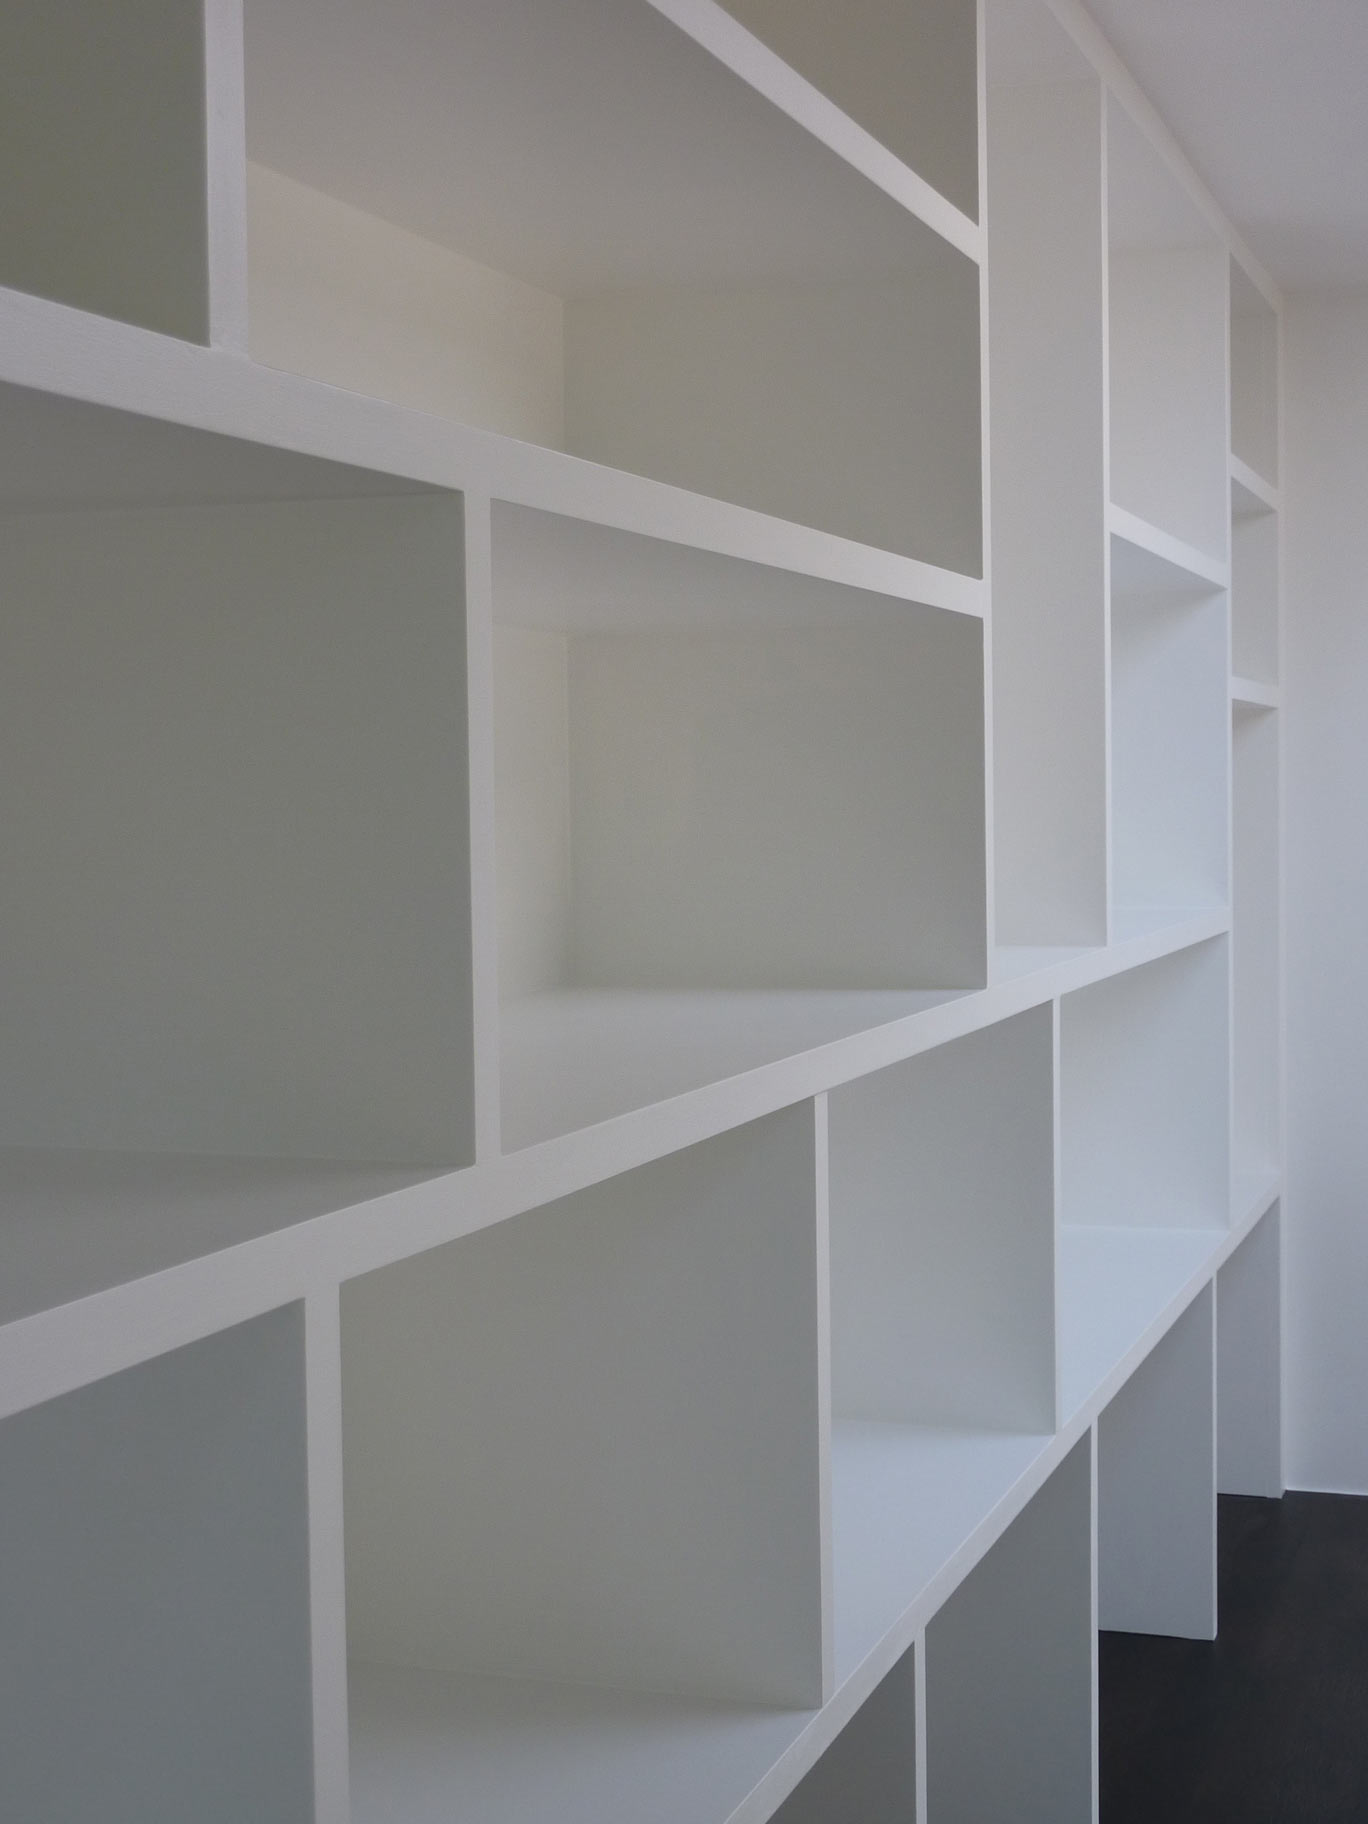 handmade bookcase with pigeon-hole shelving style for bespoke home office